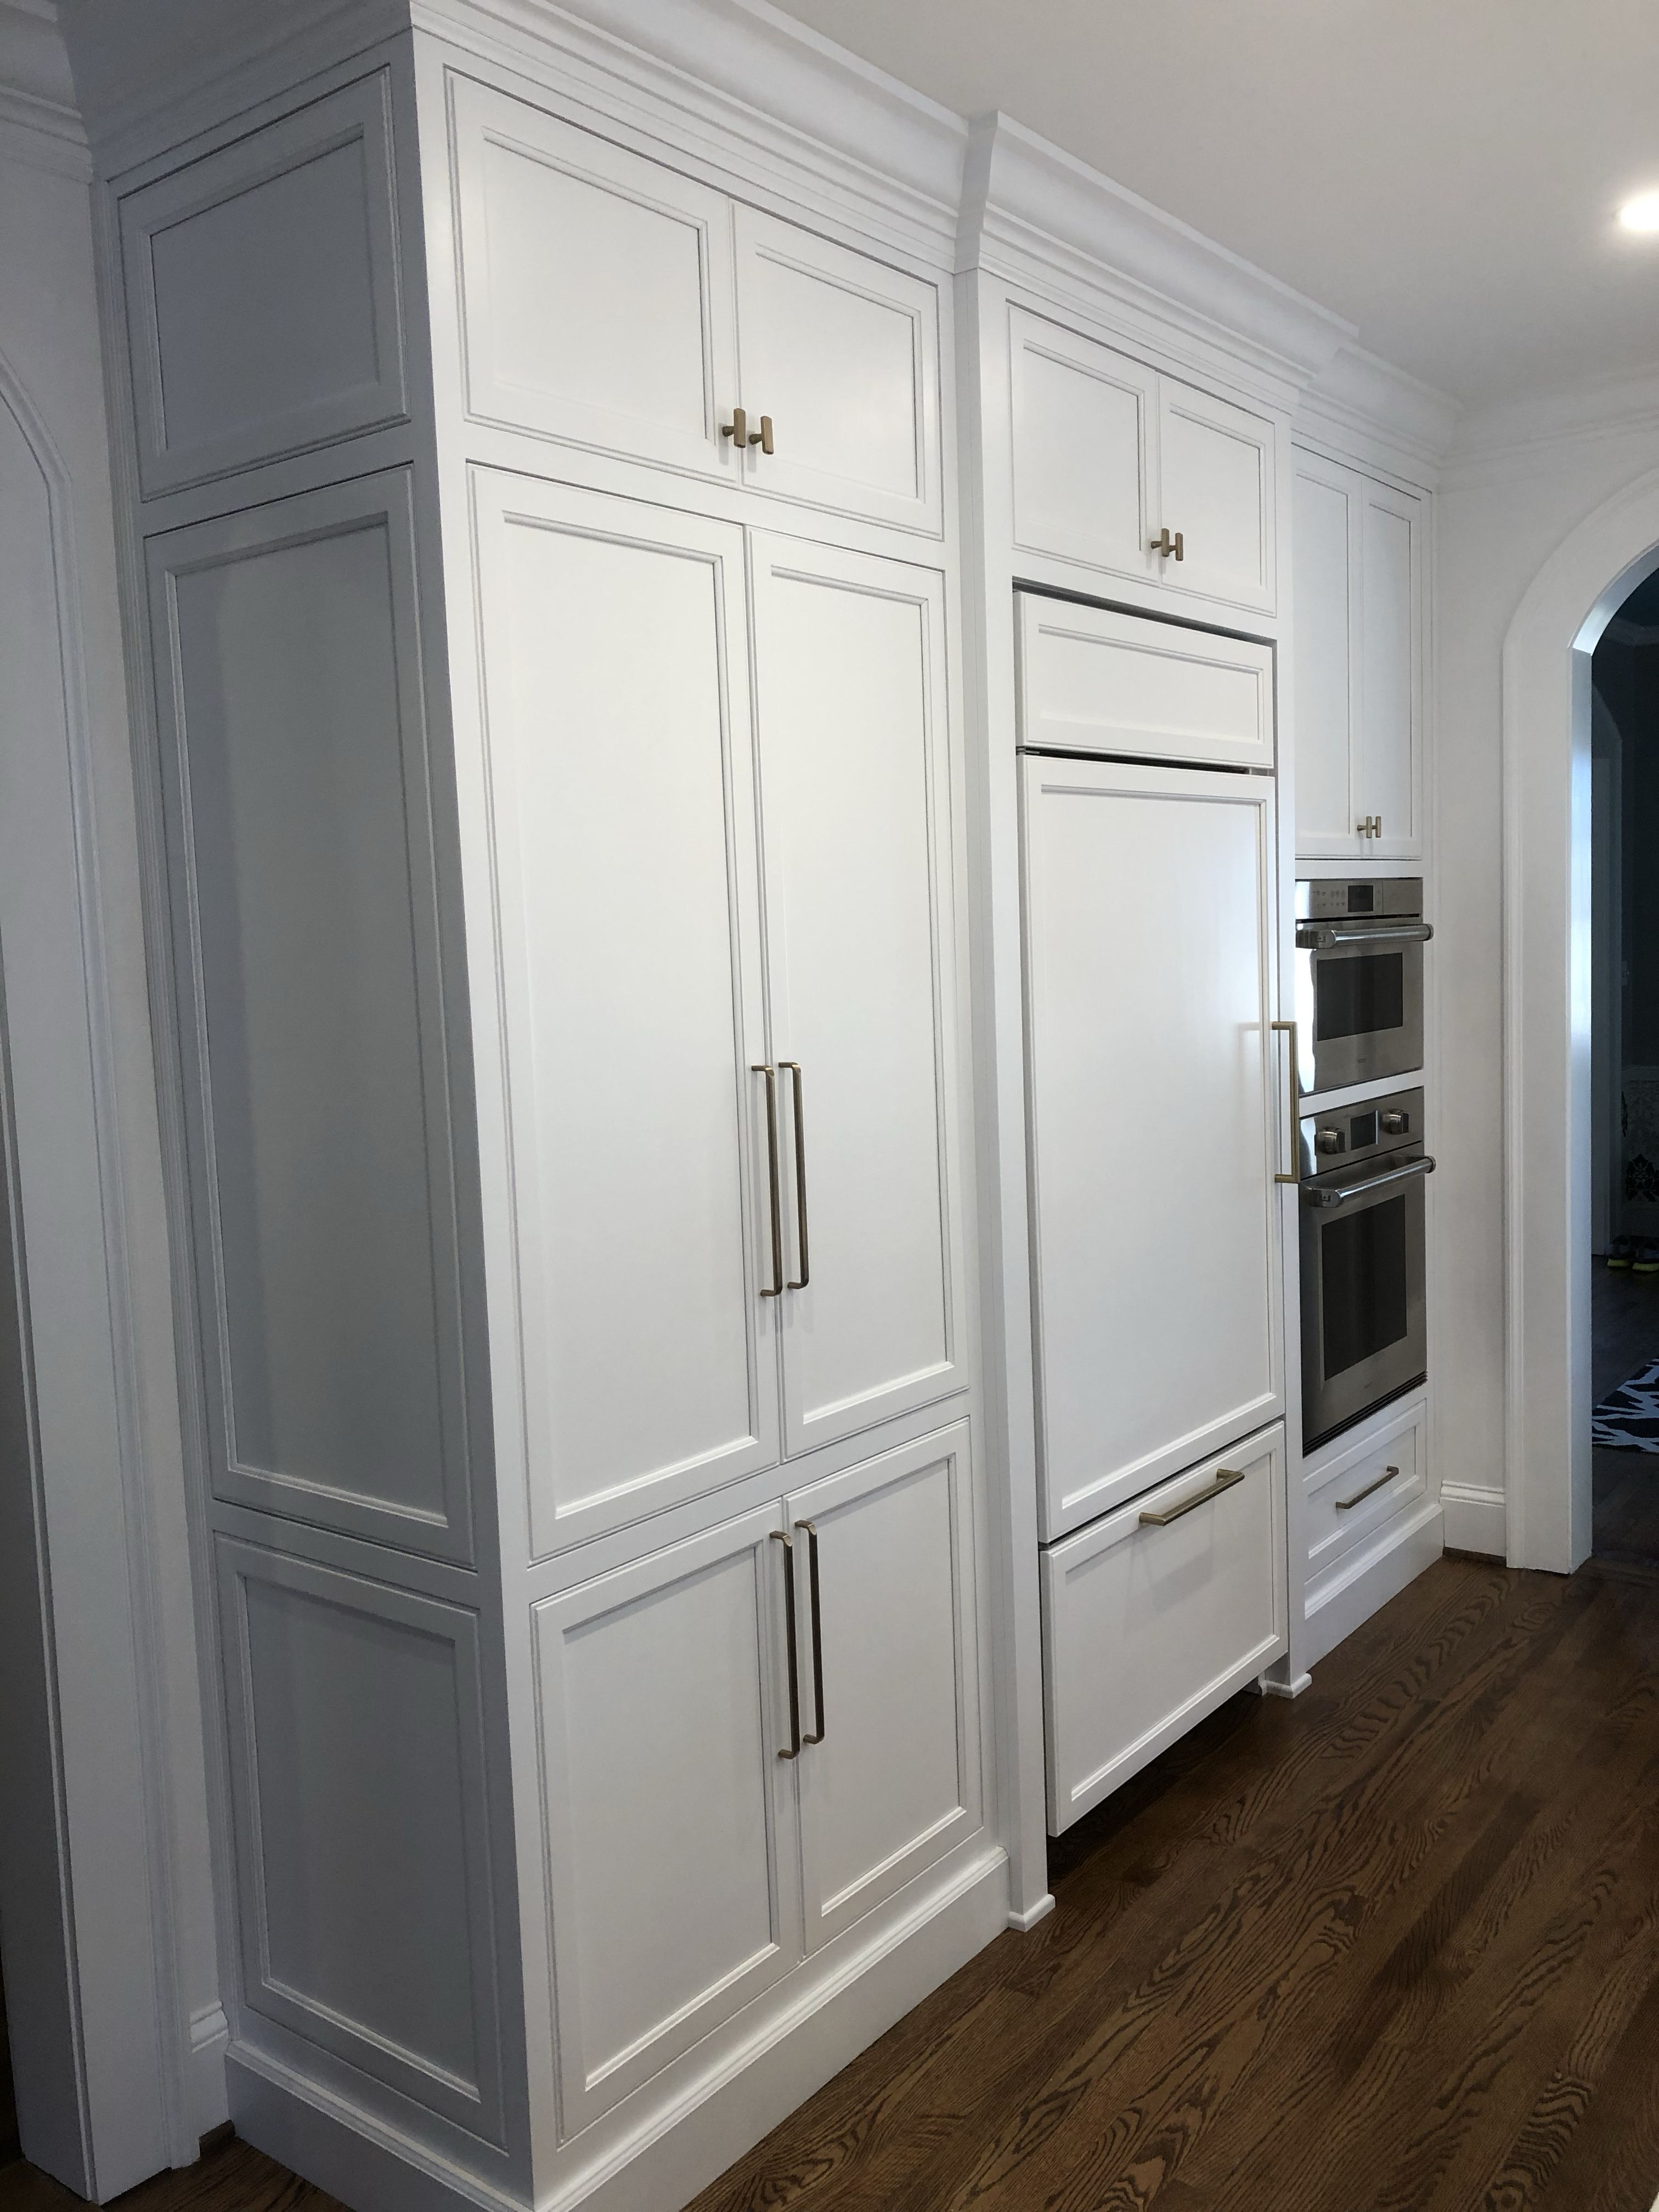 Finished Kitchen Chantilly Lace White Cabinets With Inset Shaker Style Doors And Drawer Fr Refrigerator Panels Open Concept Kitchen Living Room Pantry Cabinet